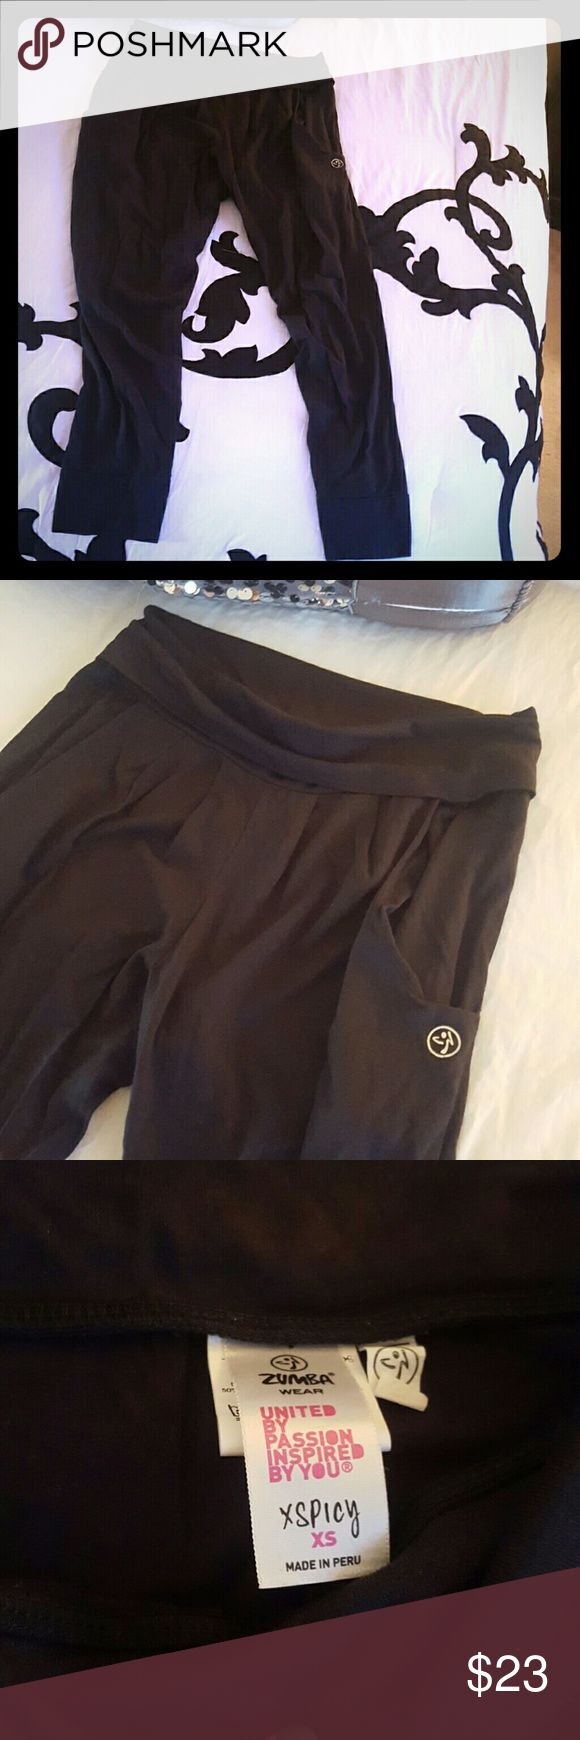 Black harlem Zumba pants Black harlem Zumba pants with pockets. Can be worn as pants or hike up as capri length. Only worn a couple times. Fits size 4. Zumba Pants